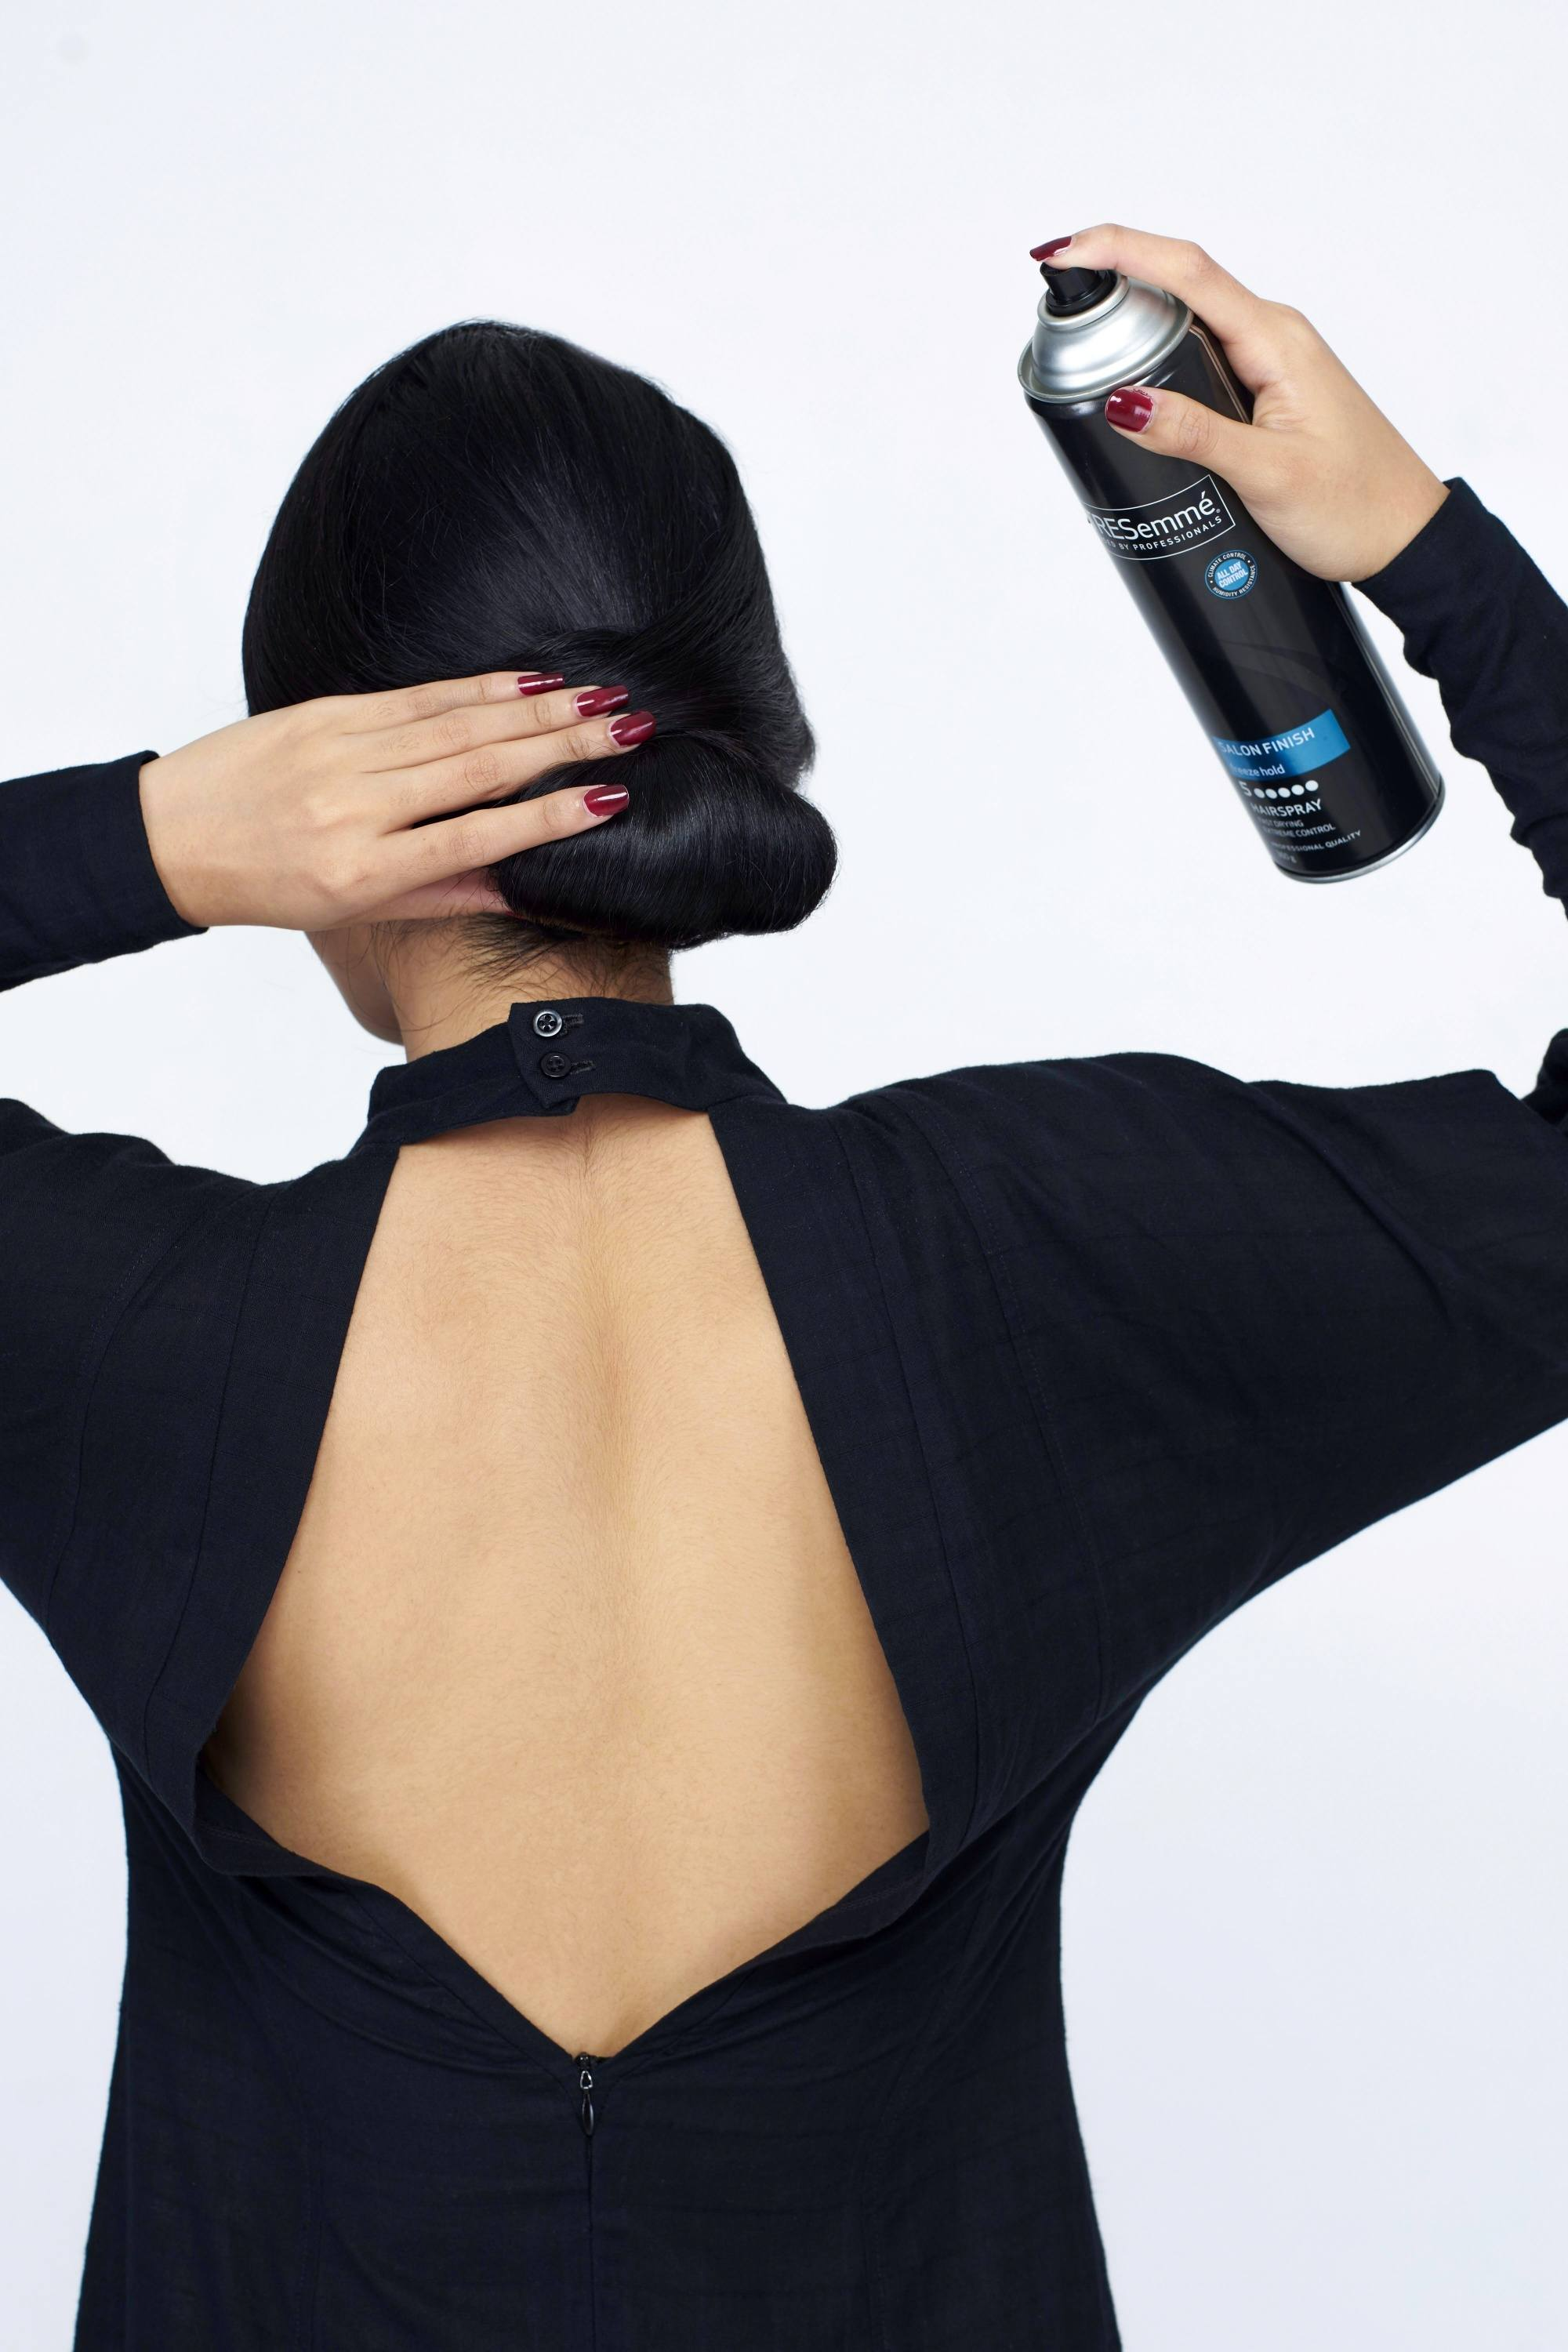 Hair spray guide: Back of Asian woman spraying on her black chignon hair